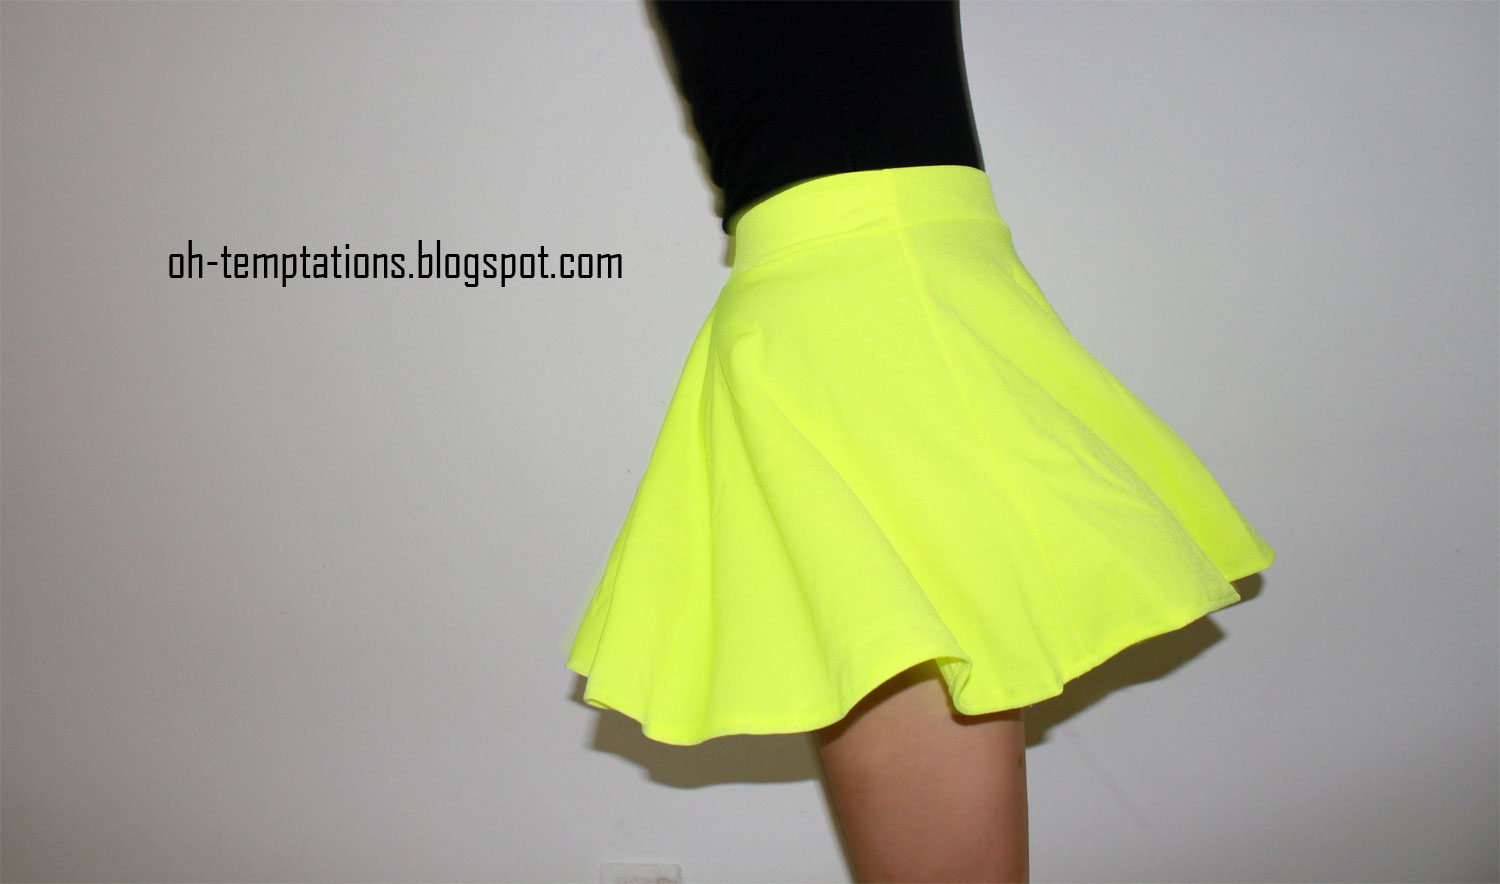 Glow sticks are optional when you've got a blazing bright delight like the Rave Review Yellow Floral Print Skirt! Scuba knit skater skirt embraces all your neon dreams, with the brightest lemon yellow backdrop abloom with fluorescent pink and purple flowers.